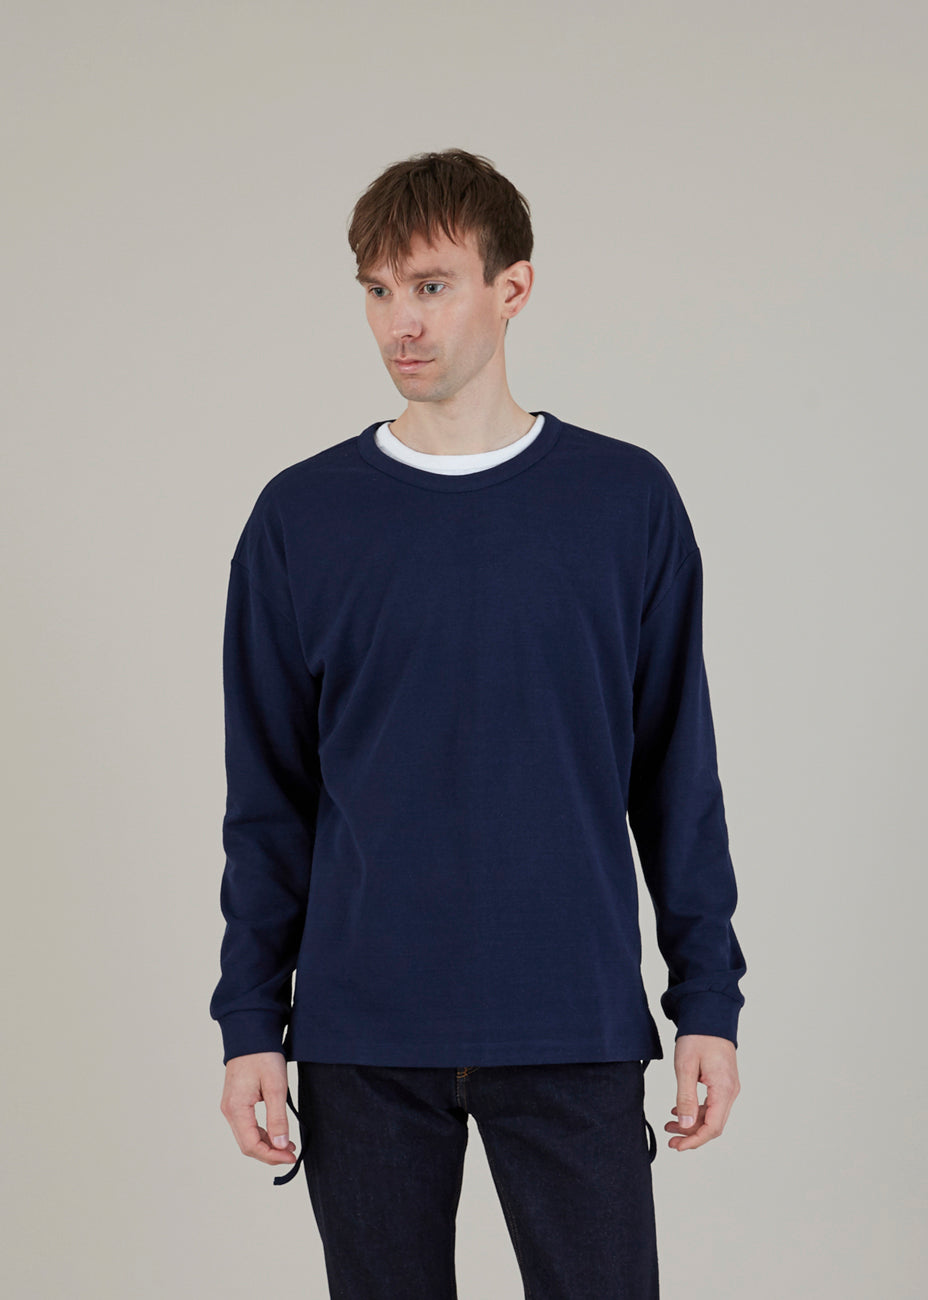 Homecore Killies Crewneck Sweatshirt